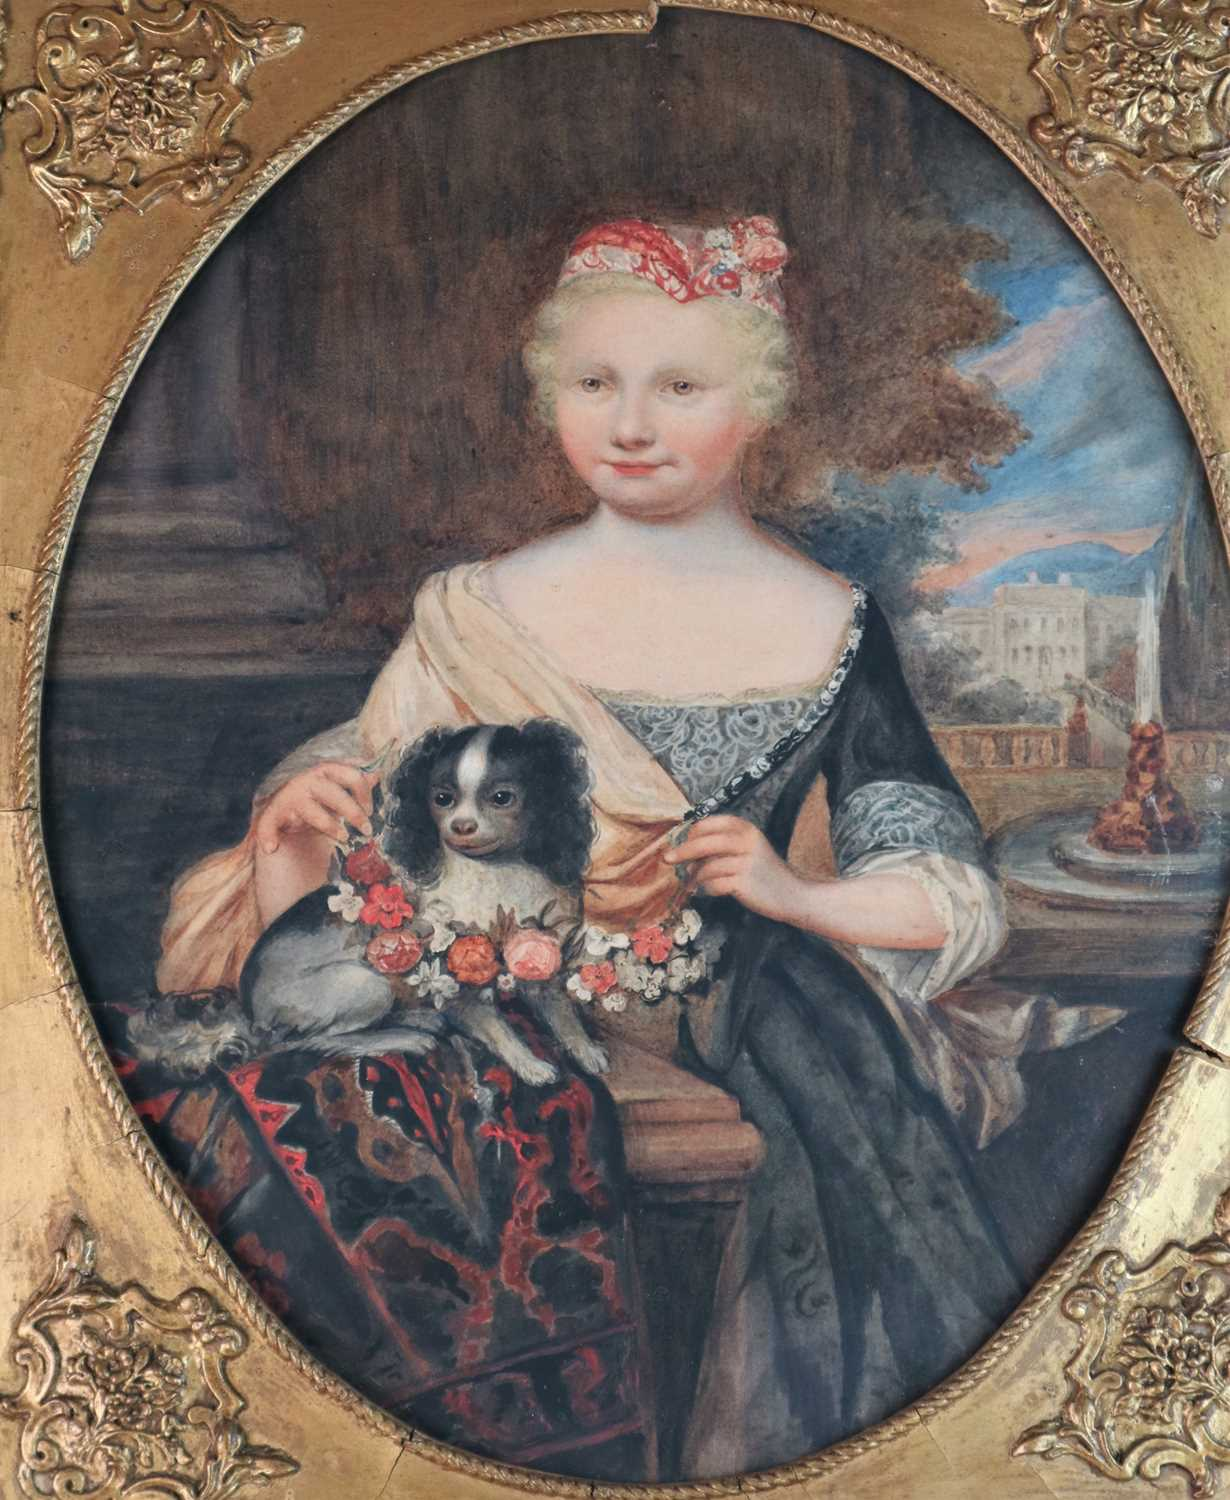 Circle of Caspar Netscher, Portrait of a Girl with a King Charles Spaniel - Image 2 of 4